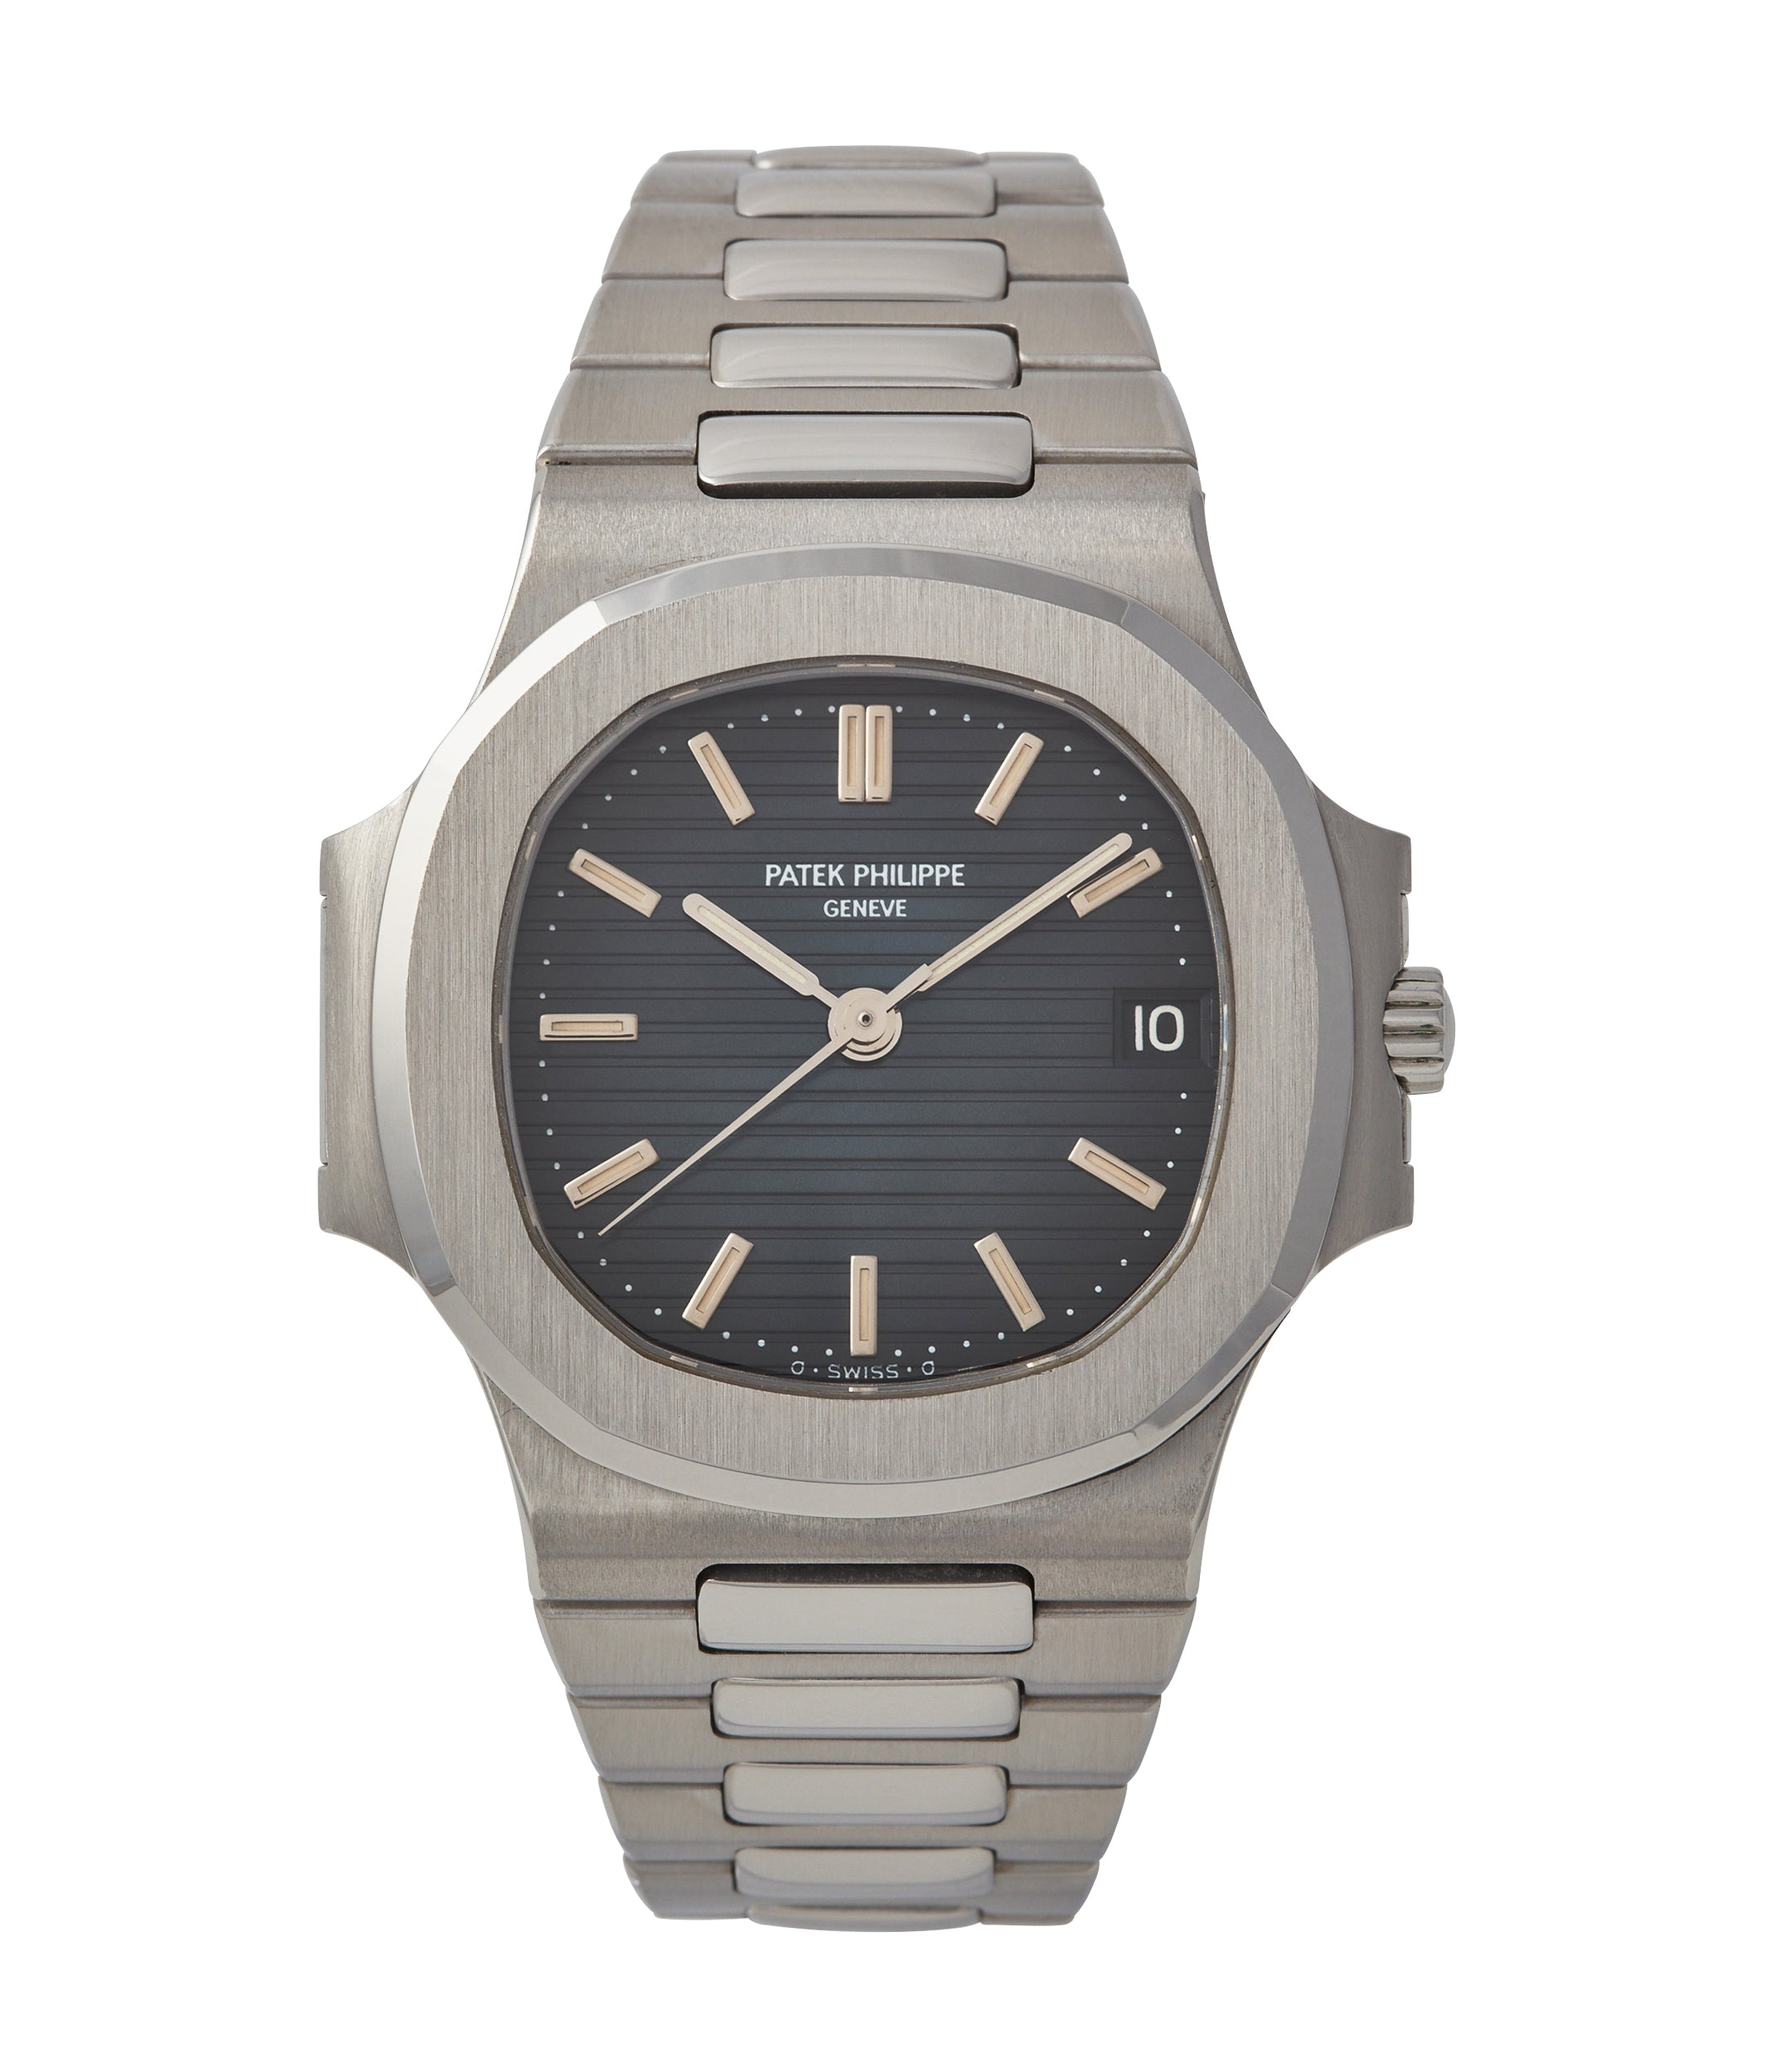 buy Patek Philippe Nautilus 3800/1 steel luxury sports watch for sale online A Collected Man London UK specialist of rare watches